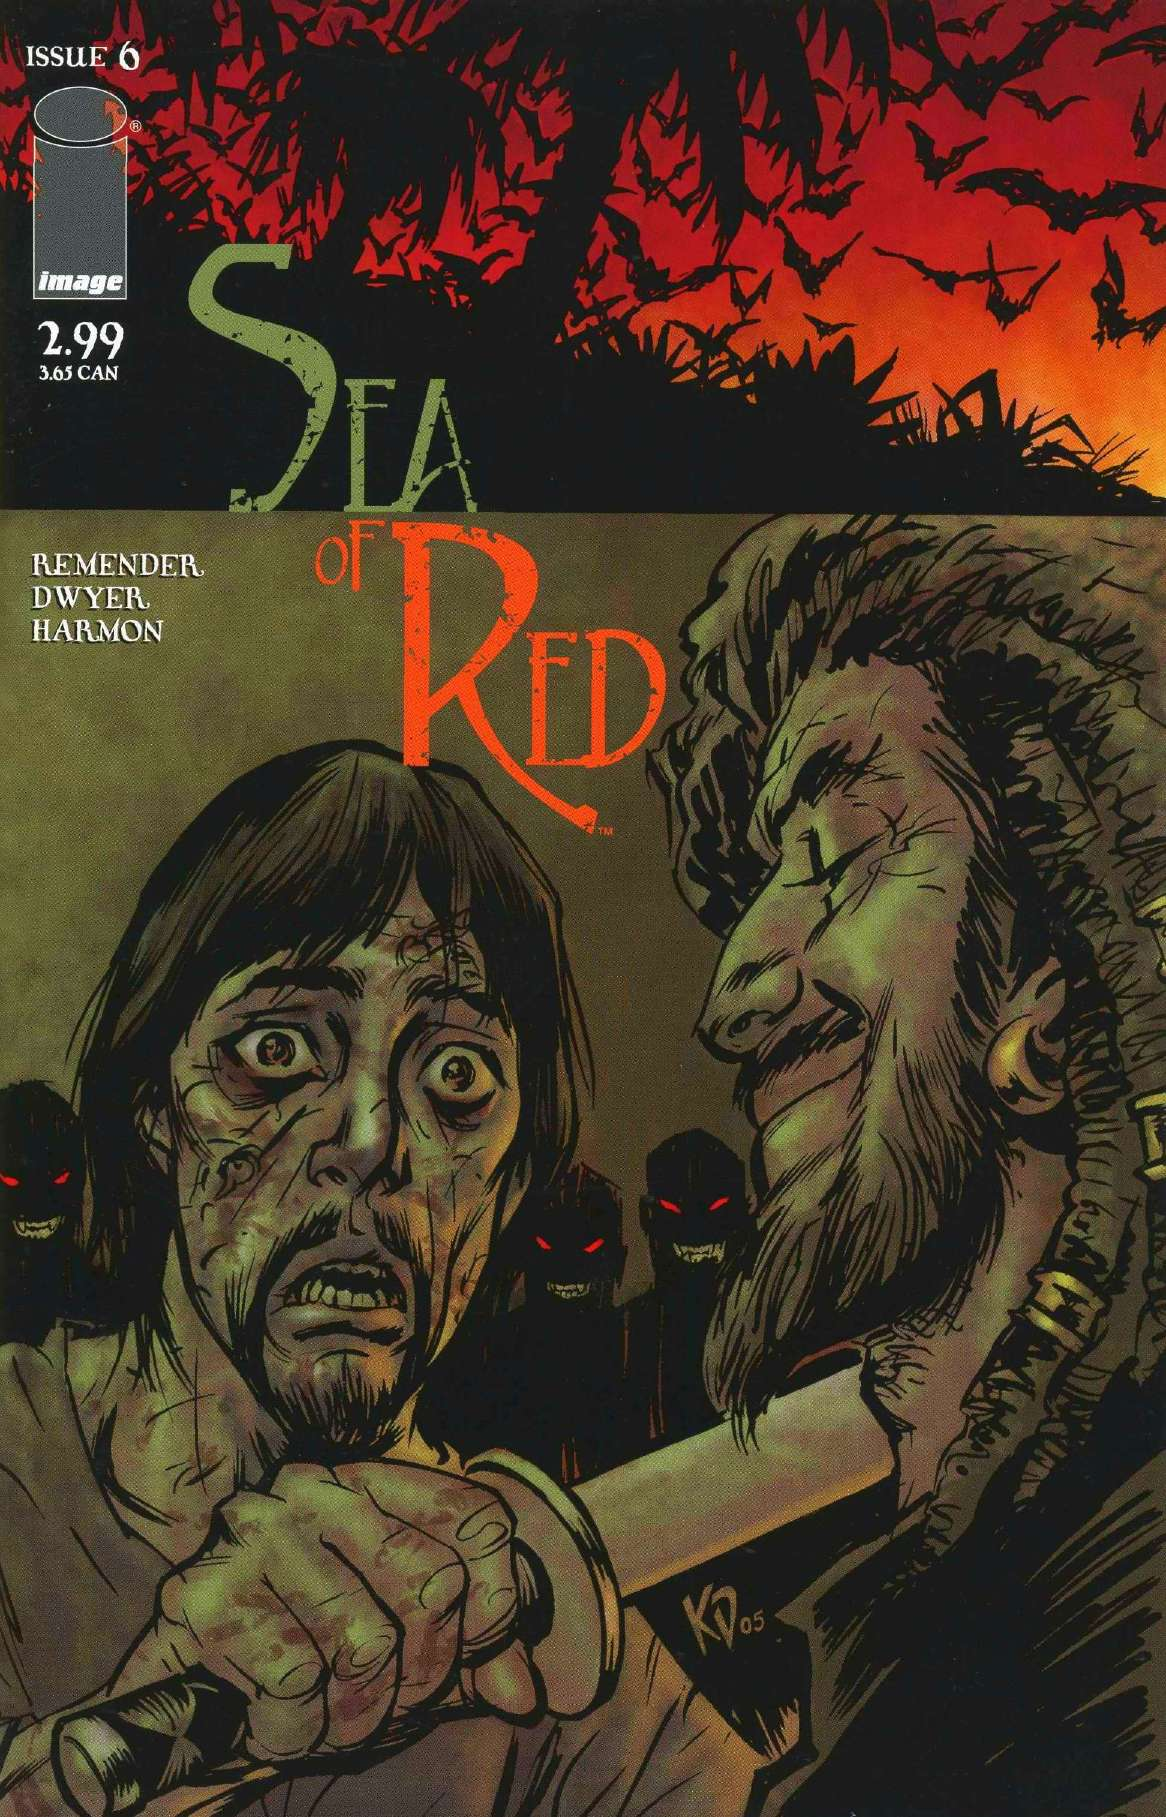 Read online Sea of Red comic -  Issue #6 - 1